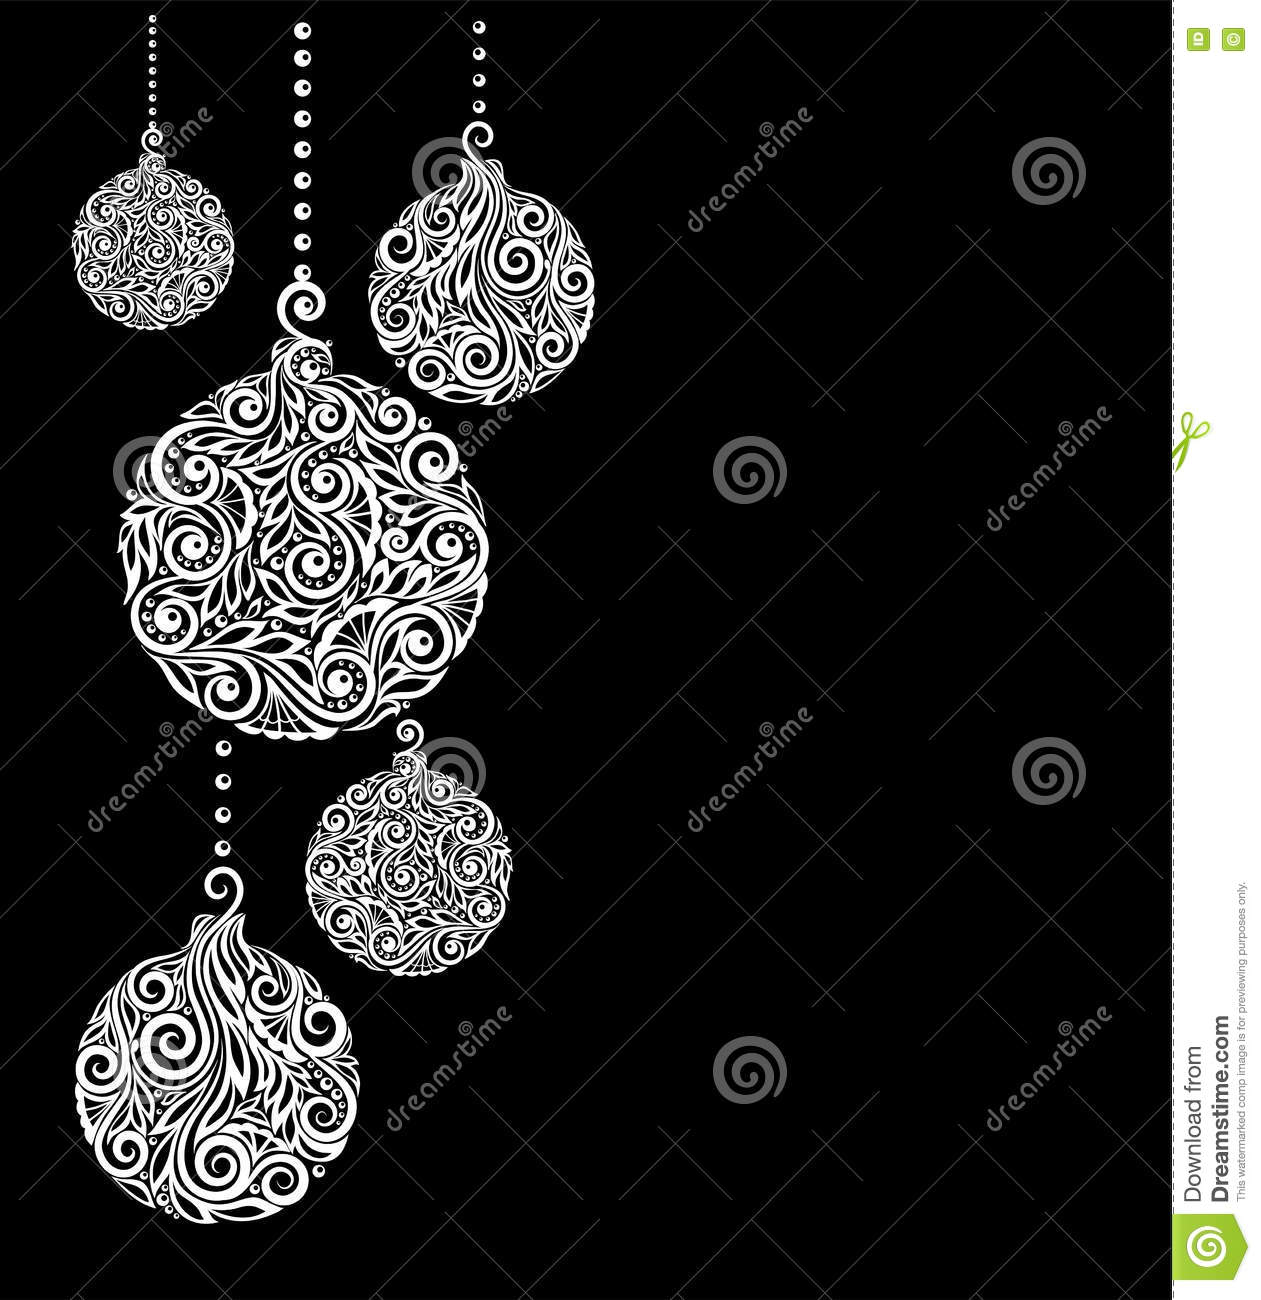 black and white christmas background with christmas balls hanging great for greeting cards